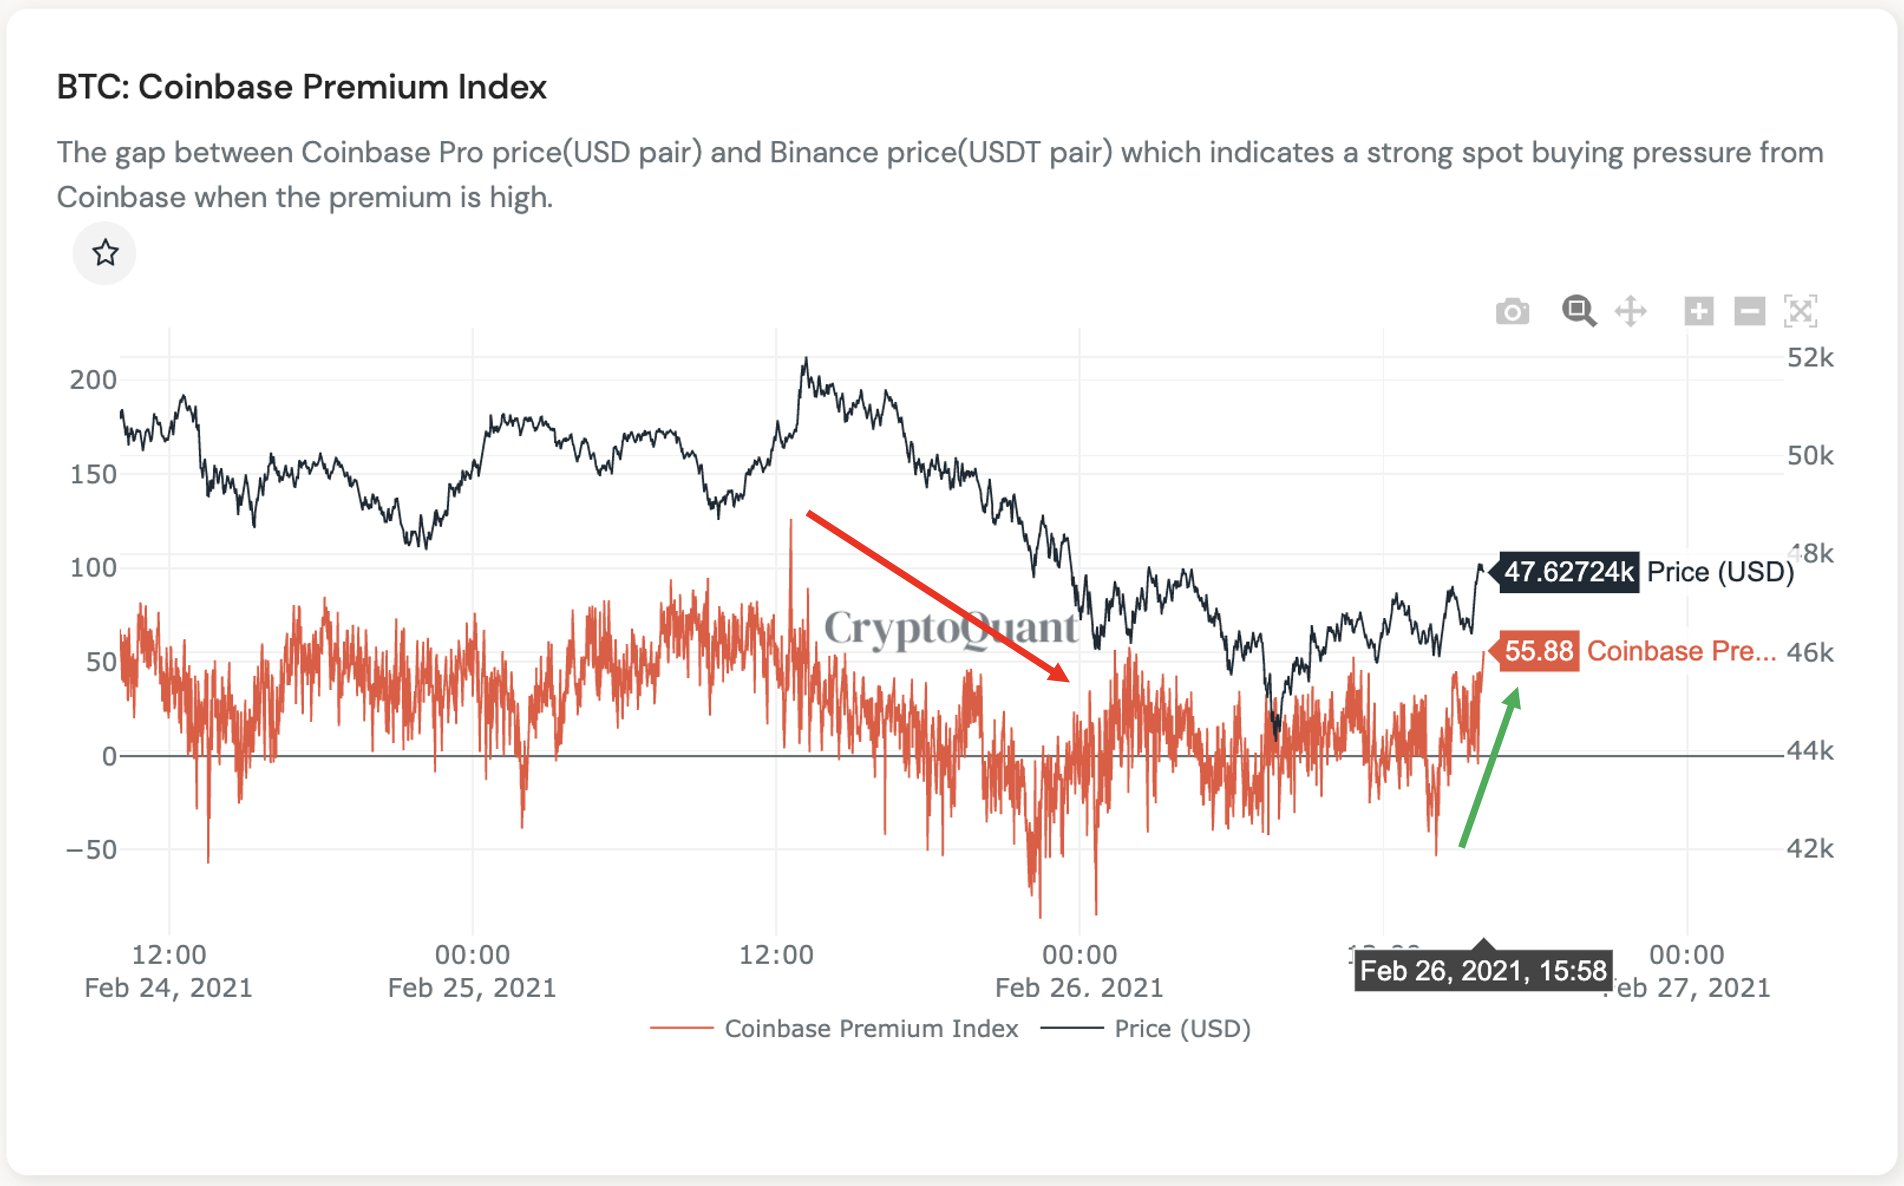 Coinbase premium turned positive, Bitcoin bull run is on?